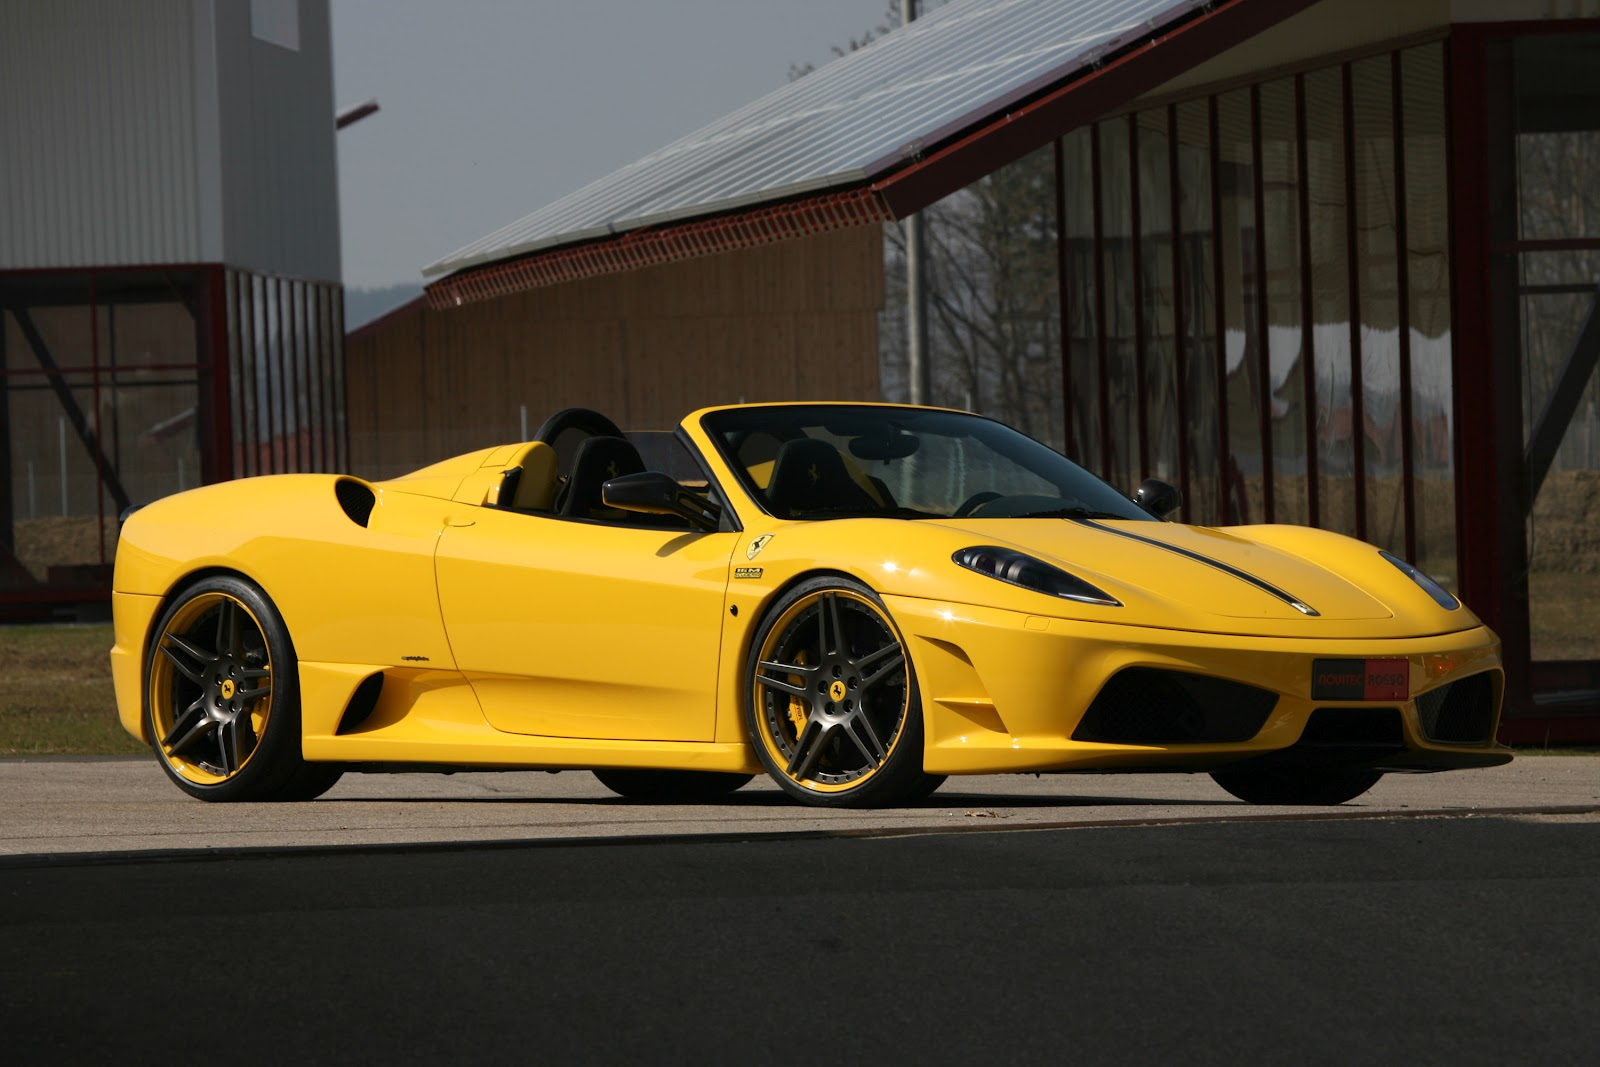 Black Car Wallpapers For Mobile Top 50 Most Dashing And Beautiful Ferrari Car Wallpapers In Hd